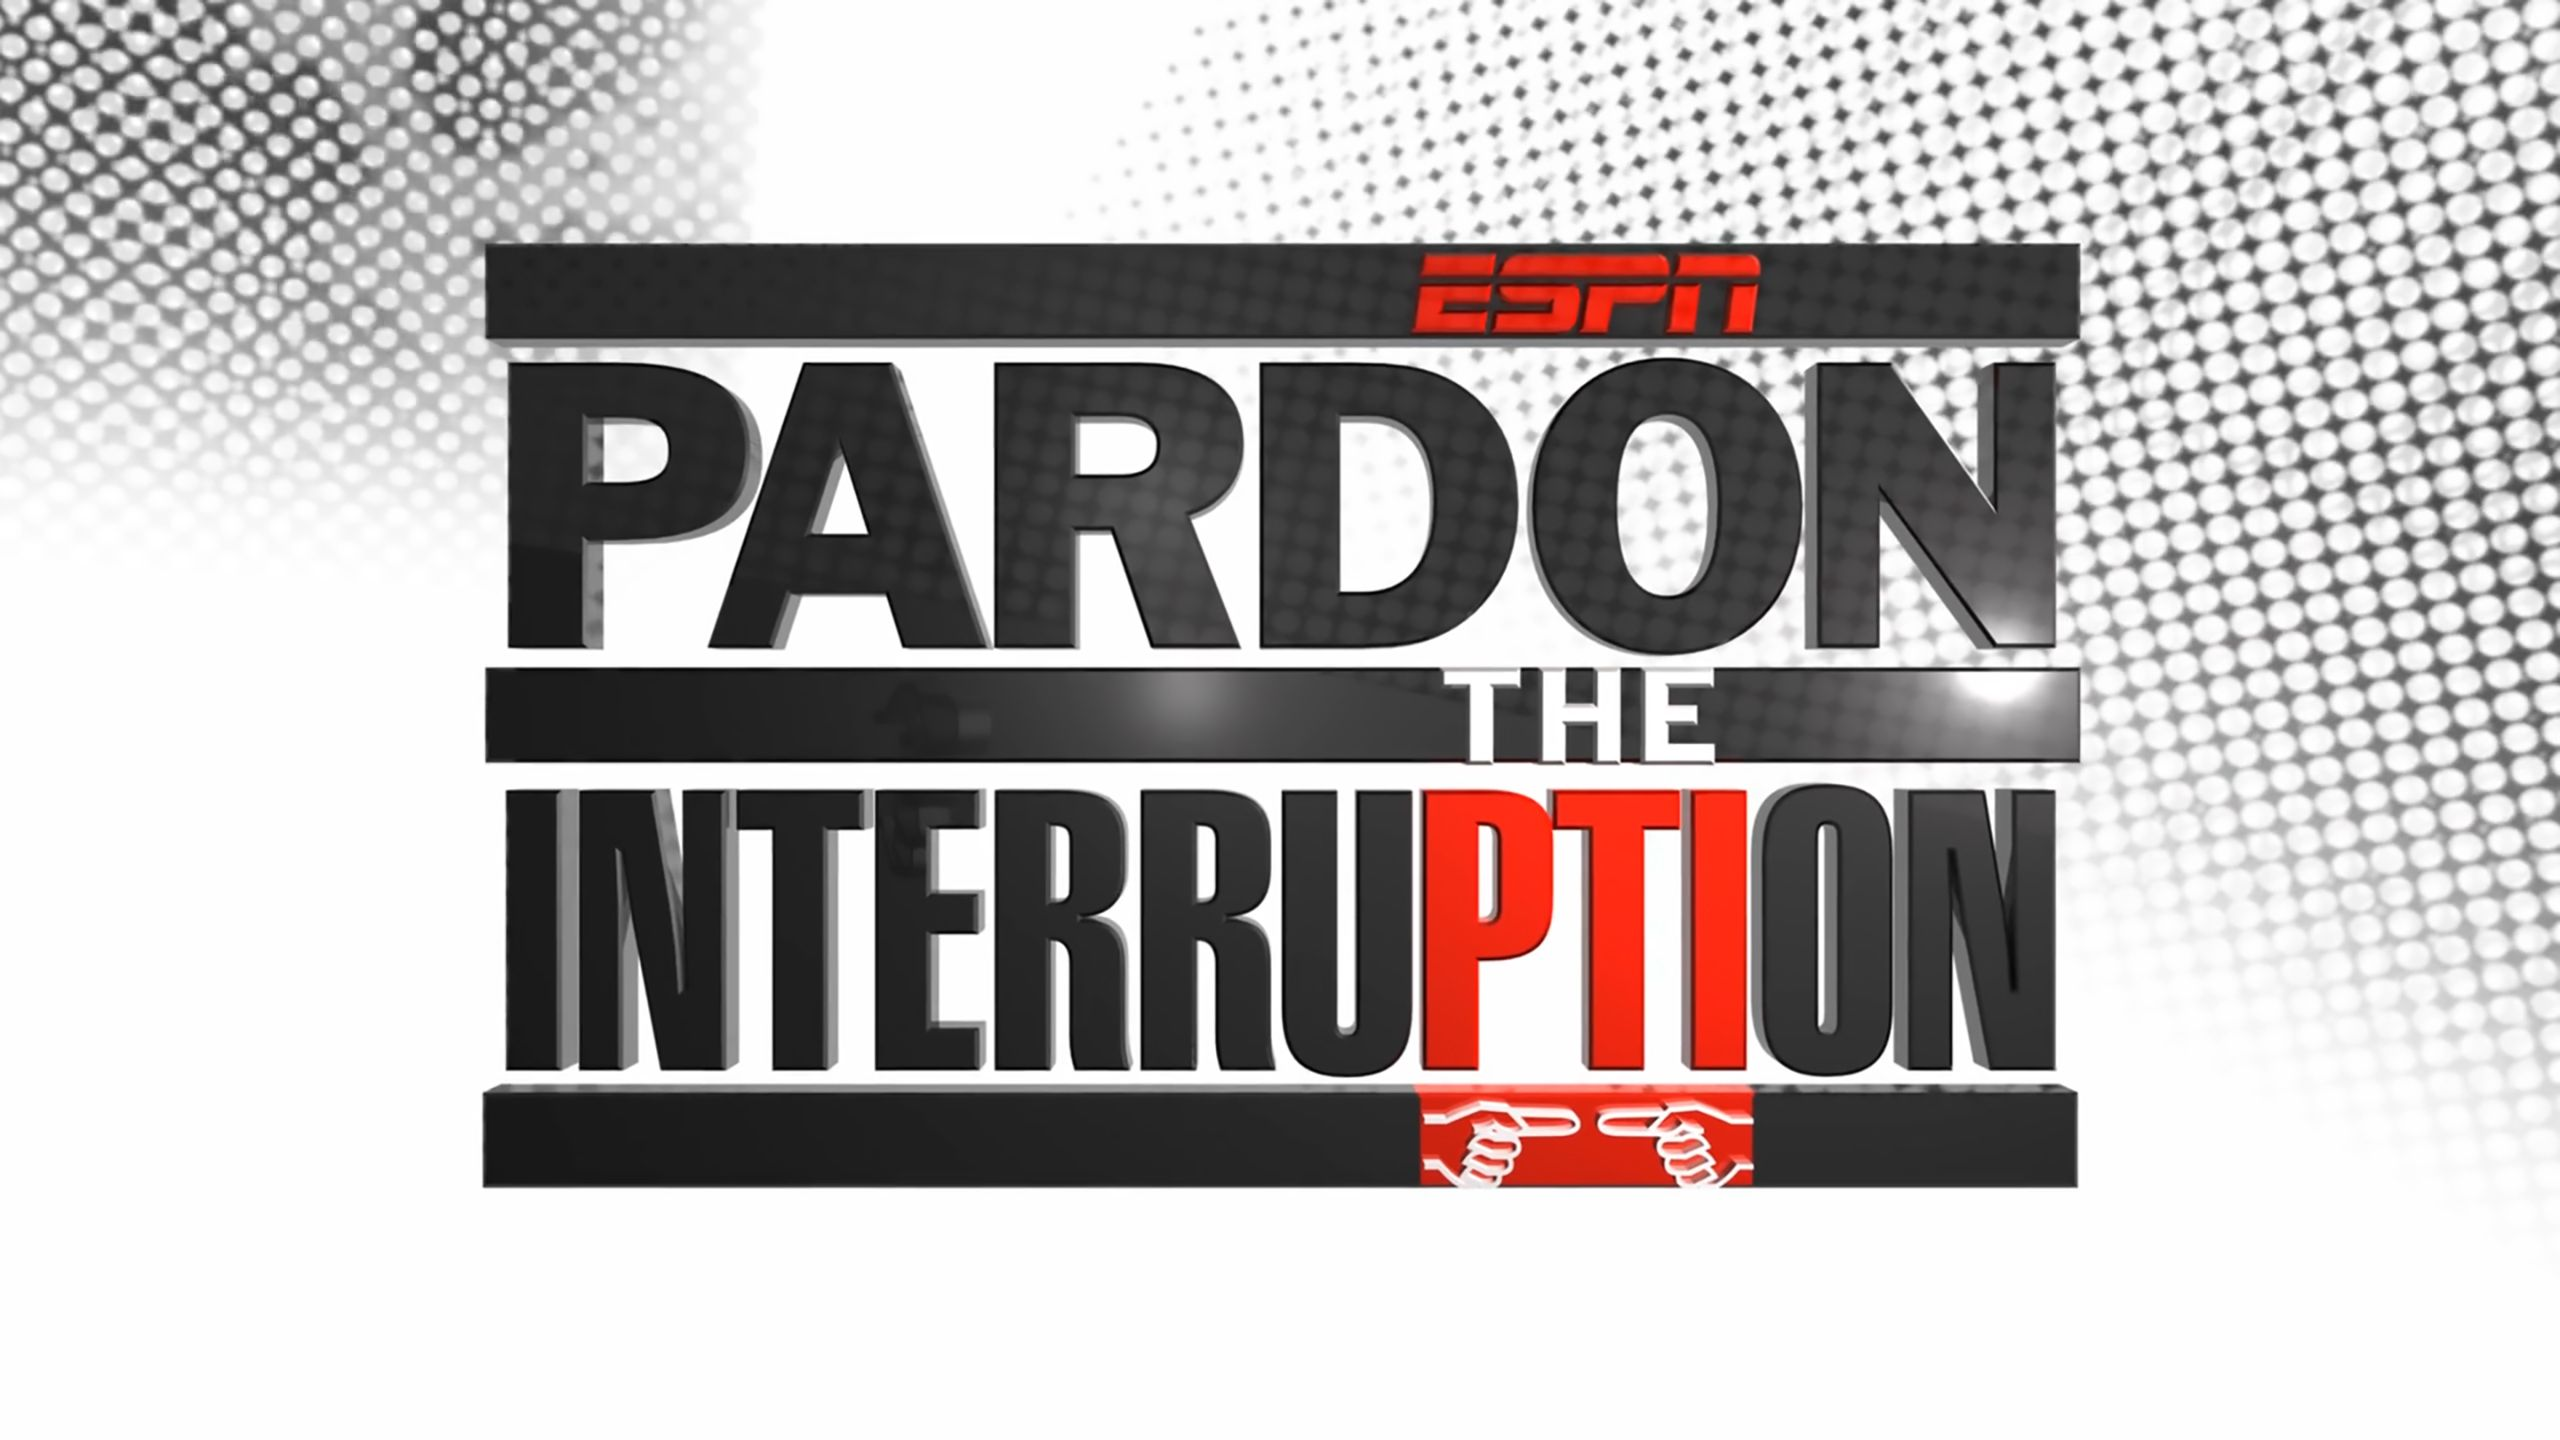 Fri, 4/20 - Pardon The Interruption